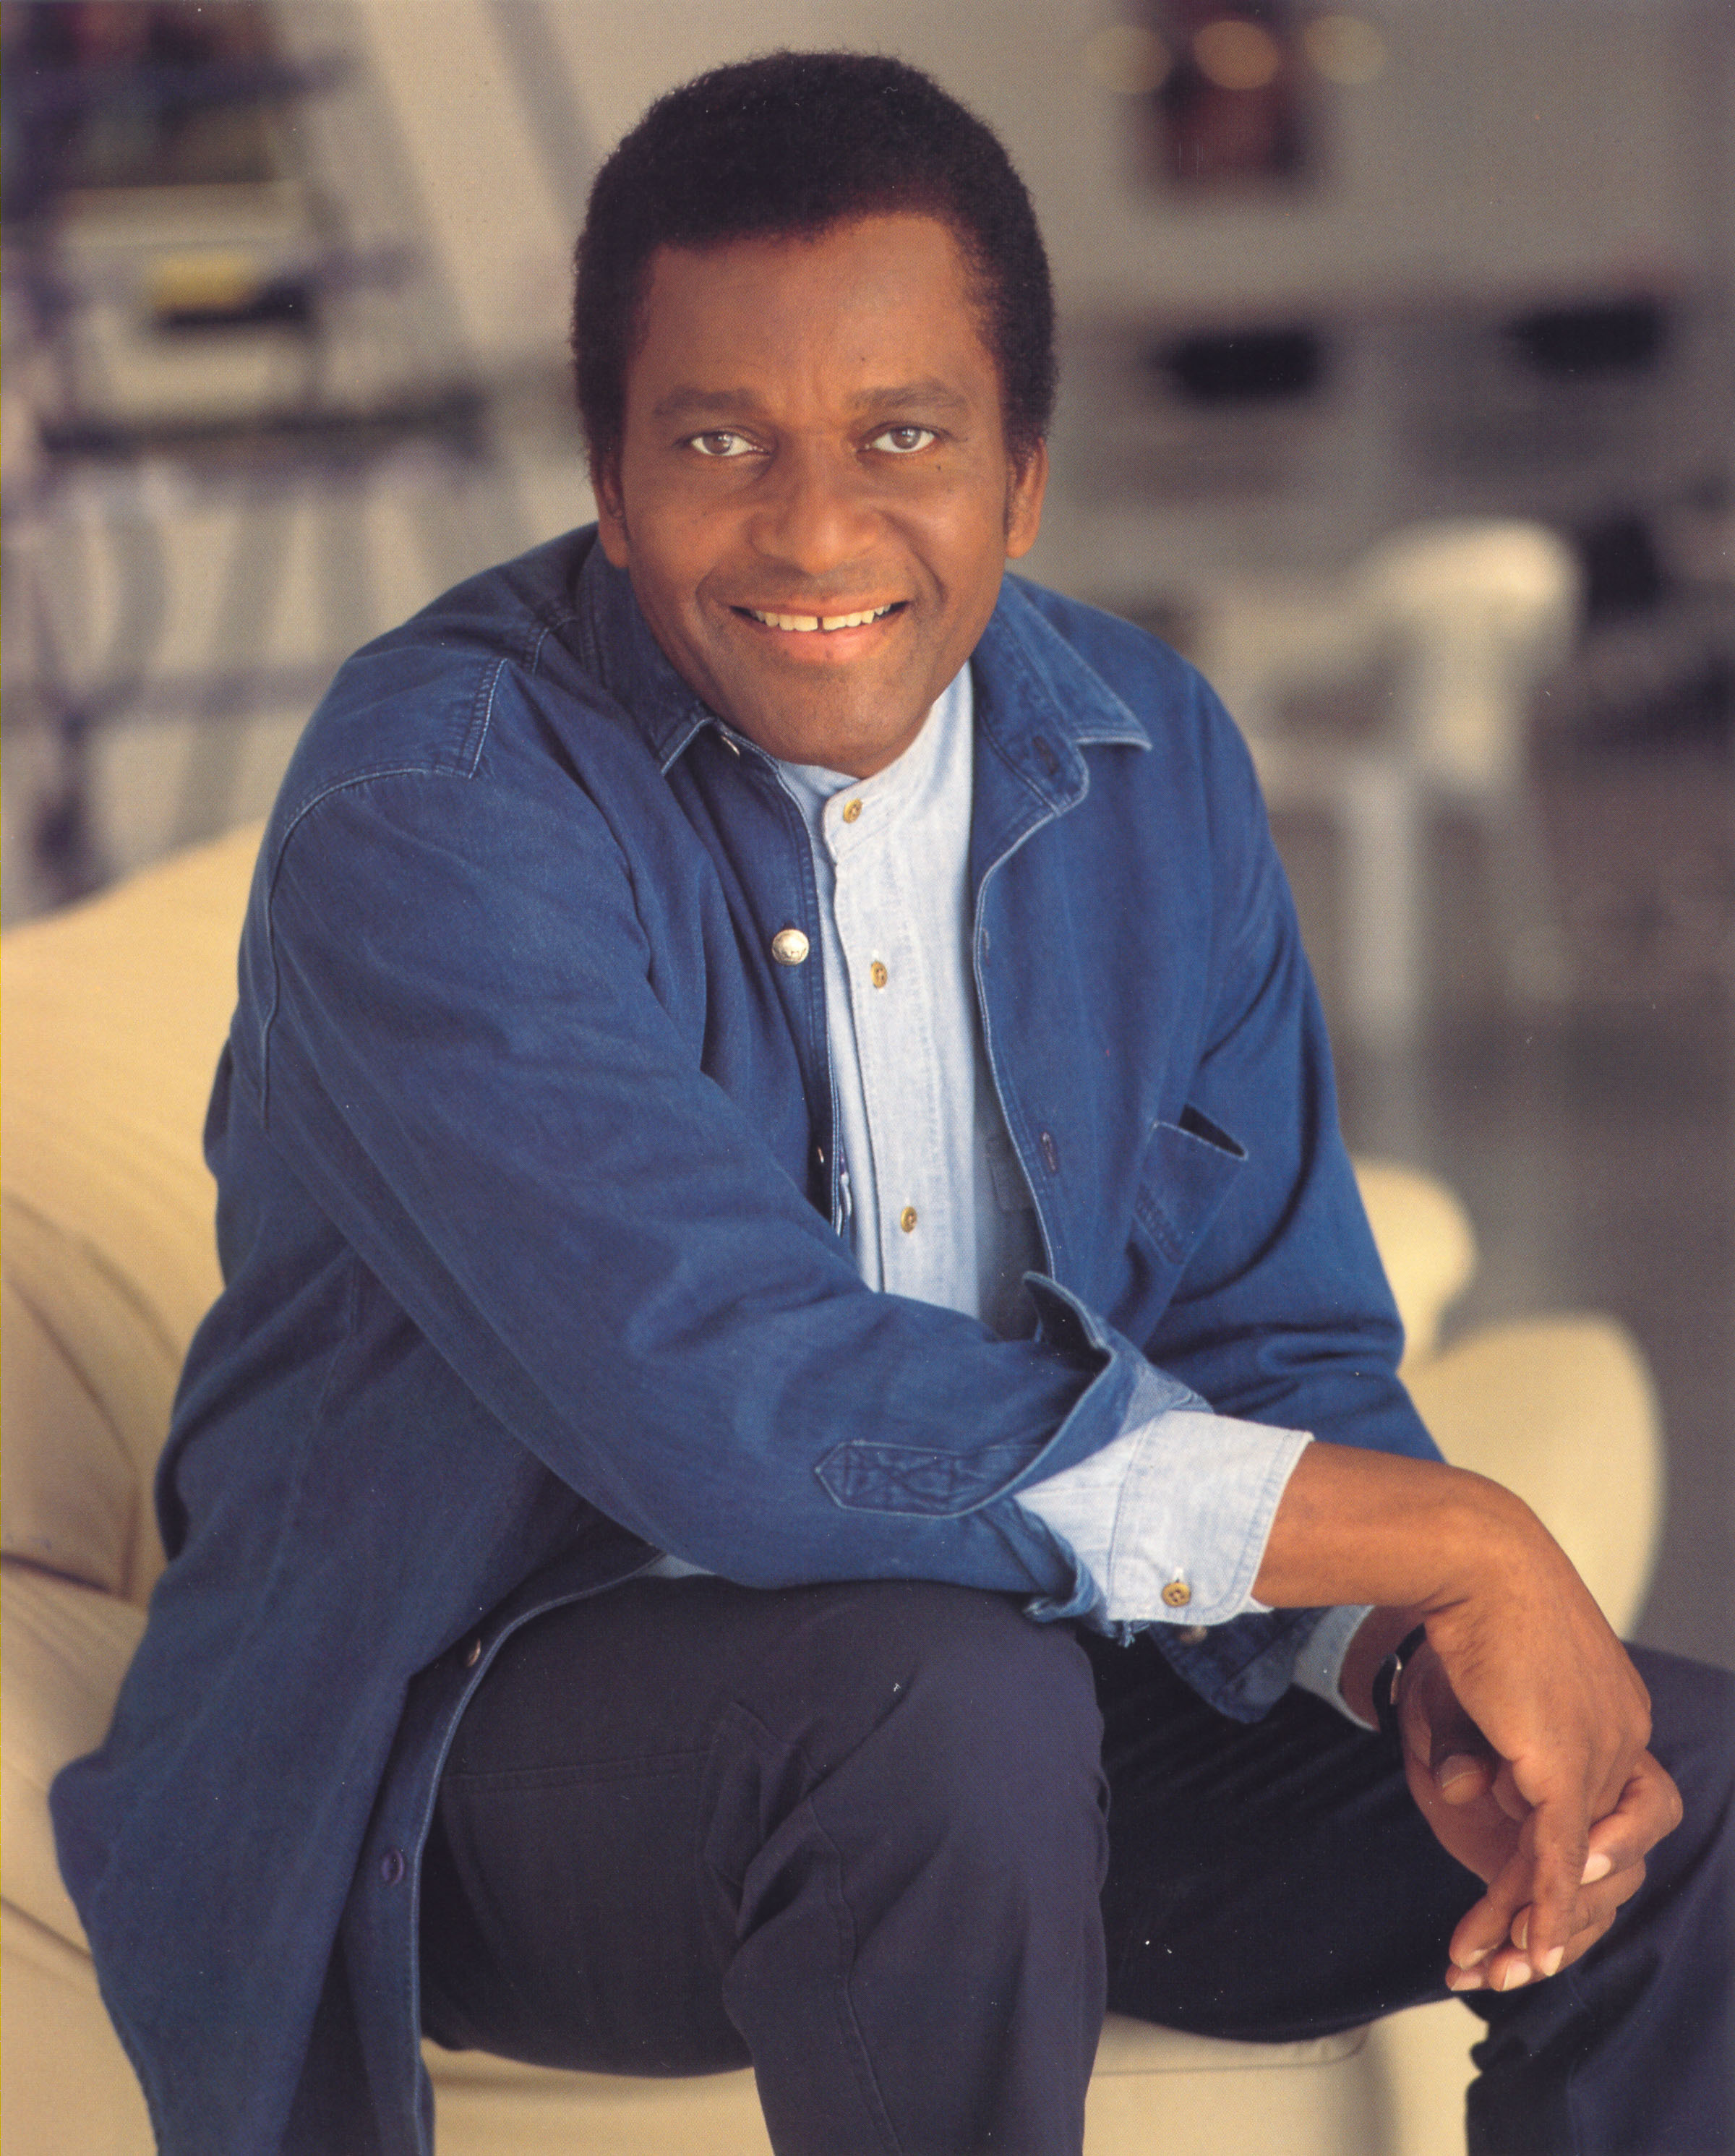 Charley pride alchetron the free social encyclopedia charley pride charley pride wallpapers free wallpapers amp background mozeypictures Images